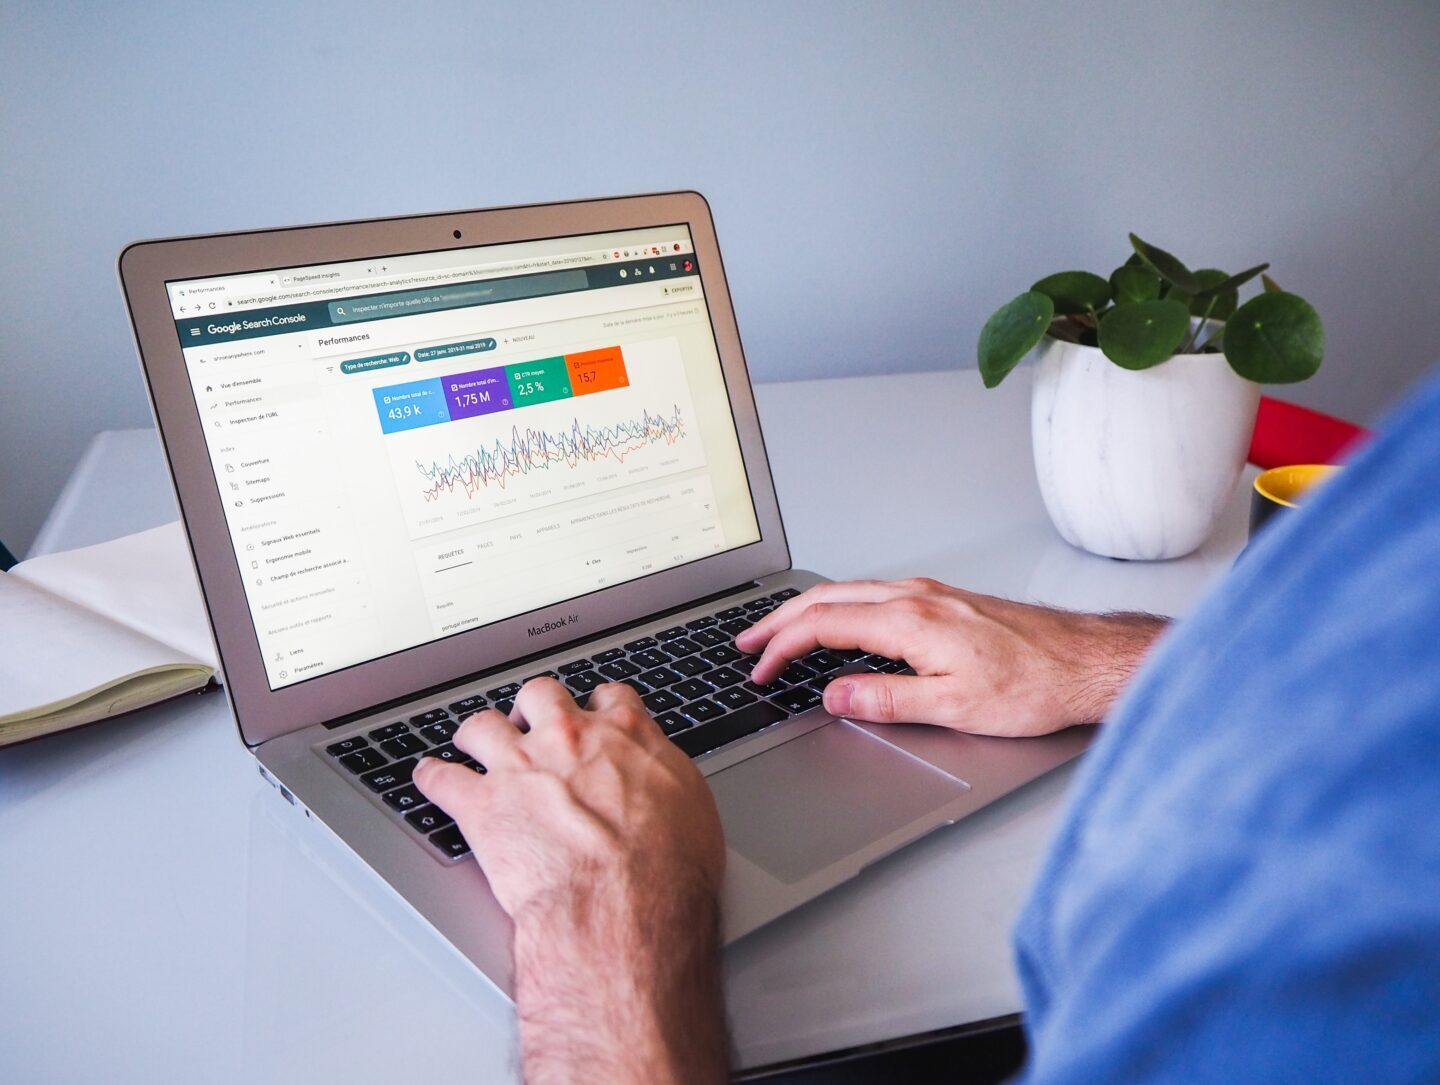 The man use a laptop to check the data from Google search Console that helps him to provide SEO audit of a site